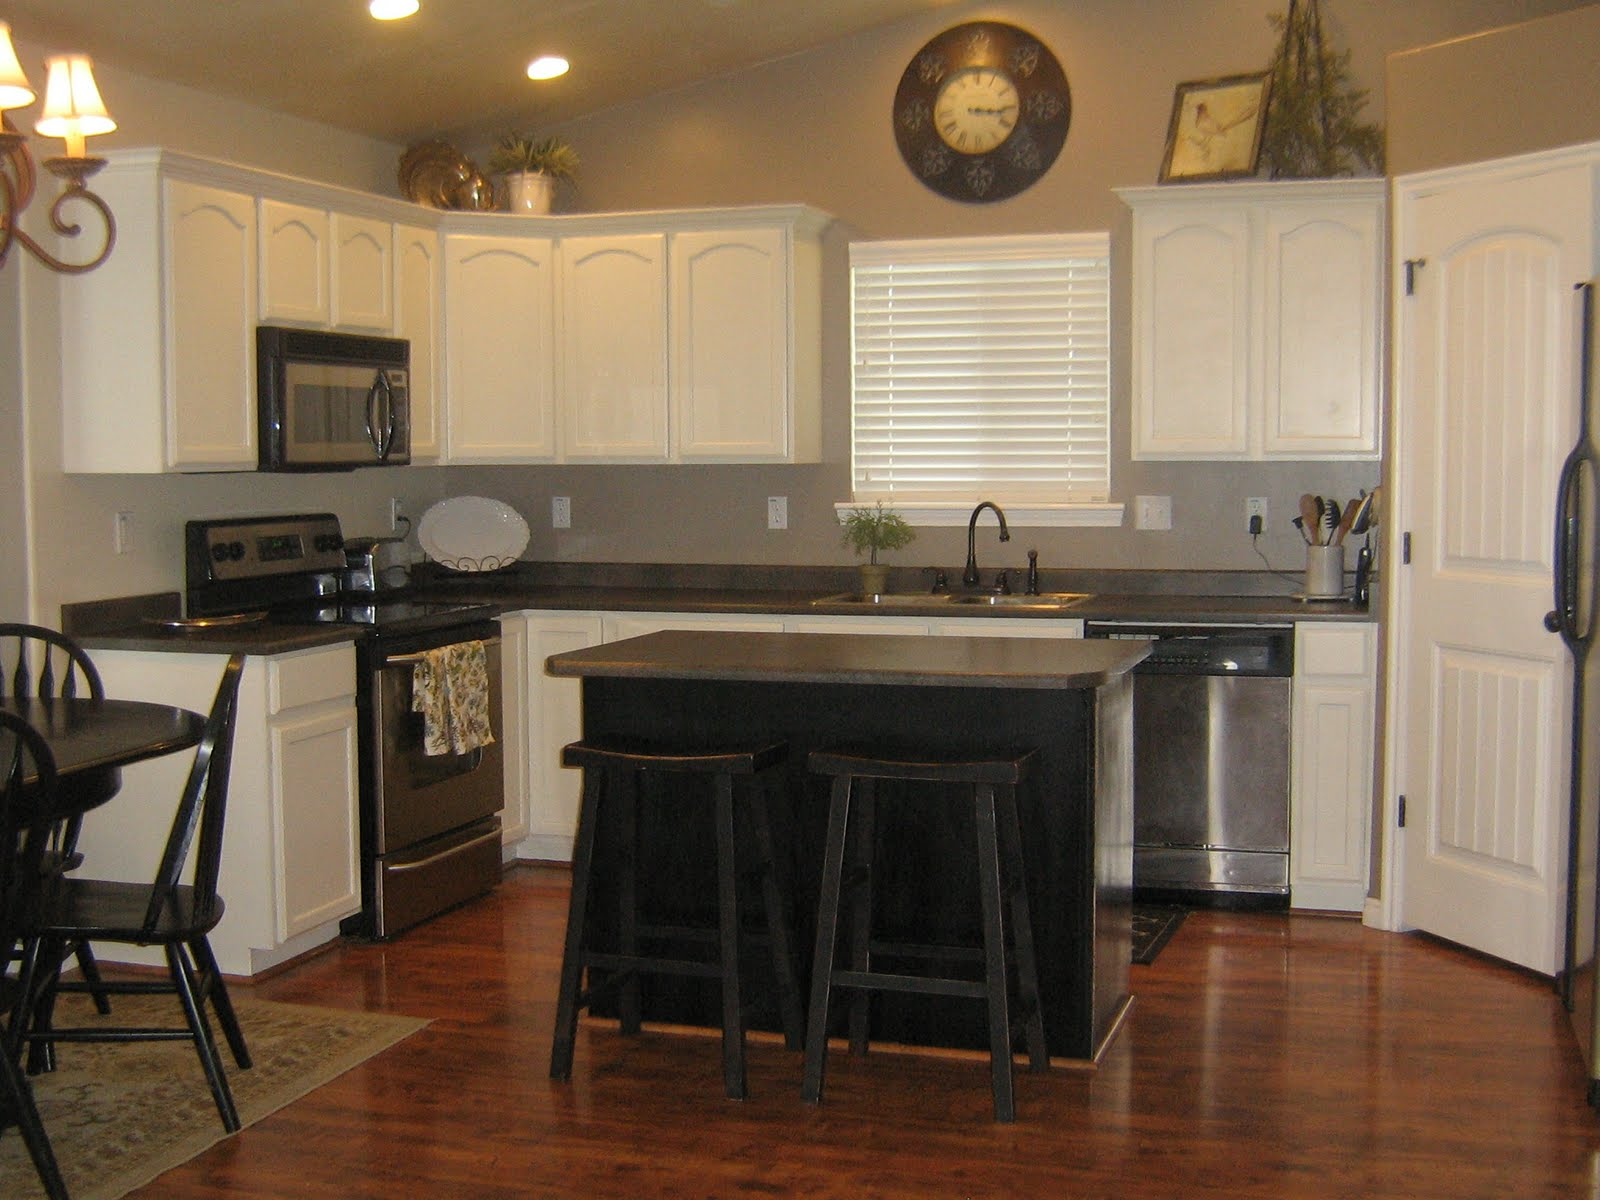 white or black kitchen cabinets remodelaholic white kitchen cabinets guest 29106